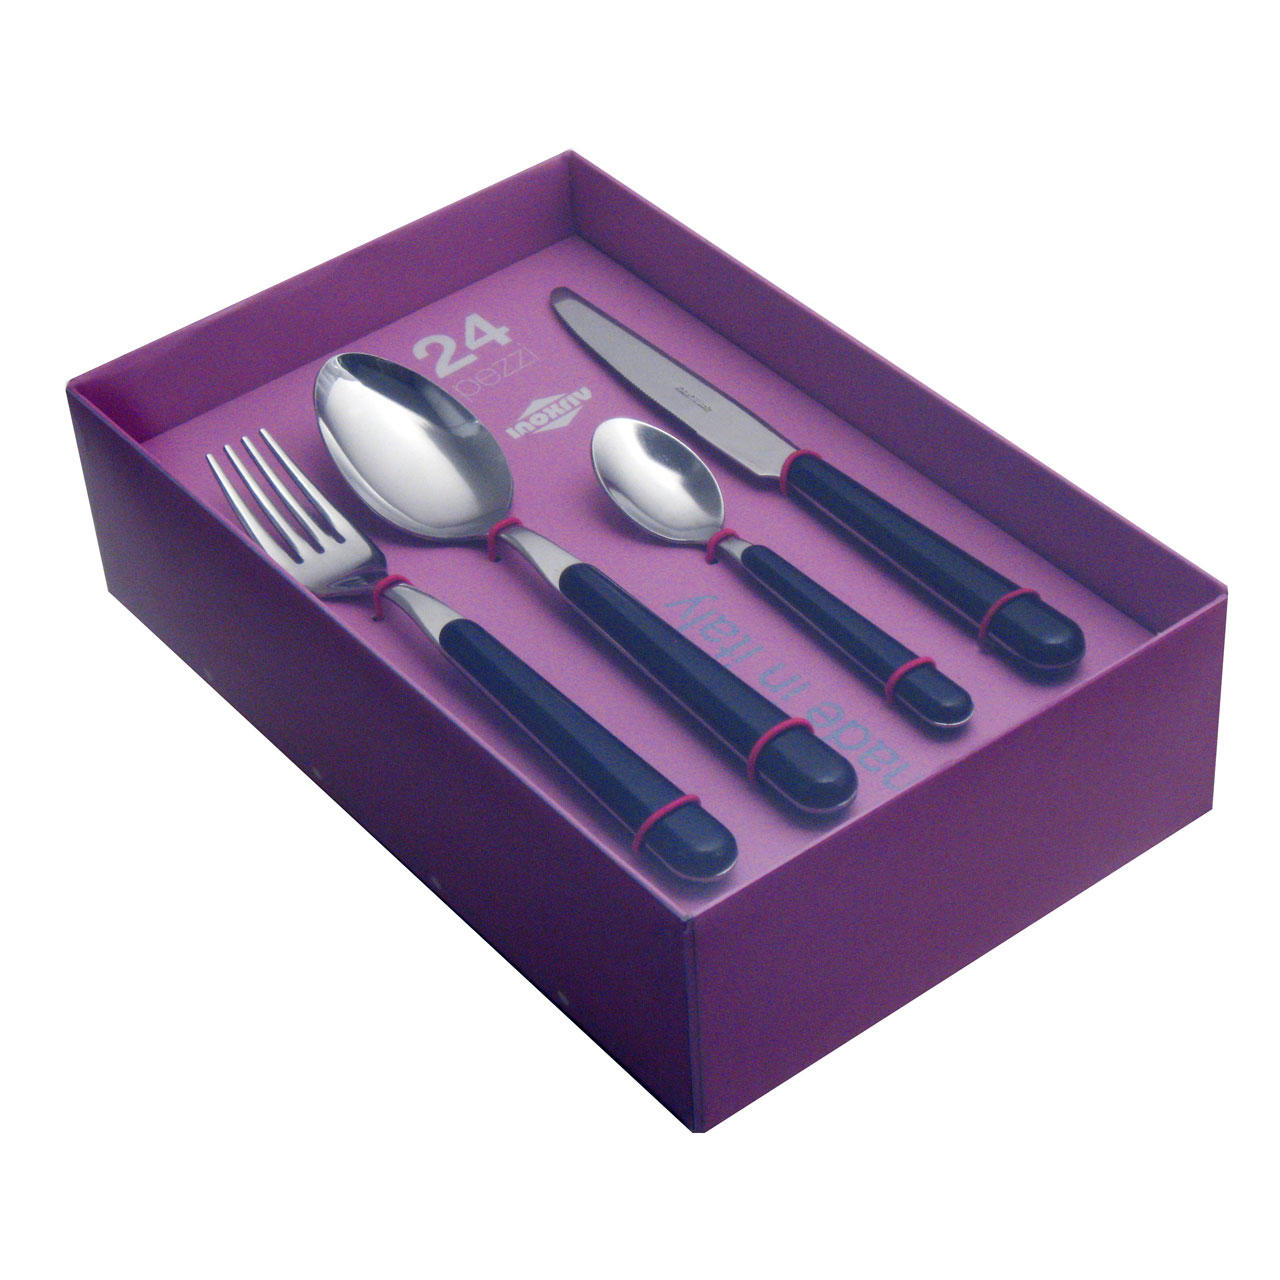 61375020 24 pcs. cutlery set Nature Box